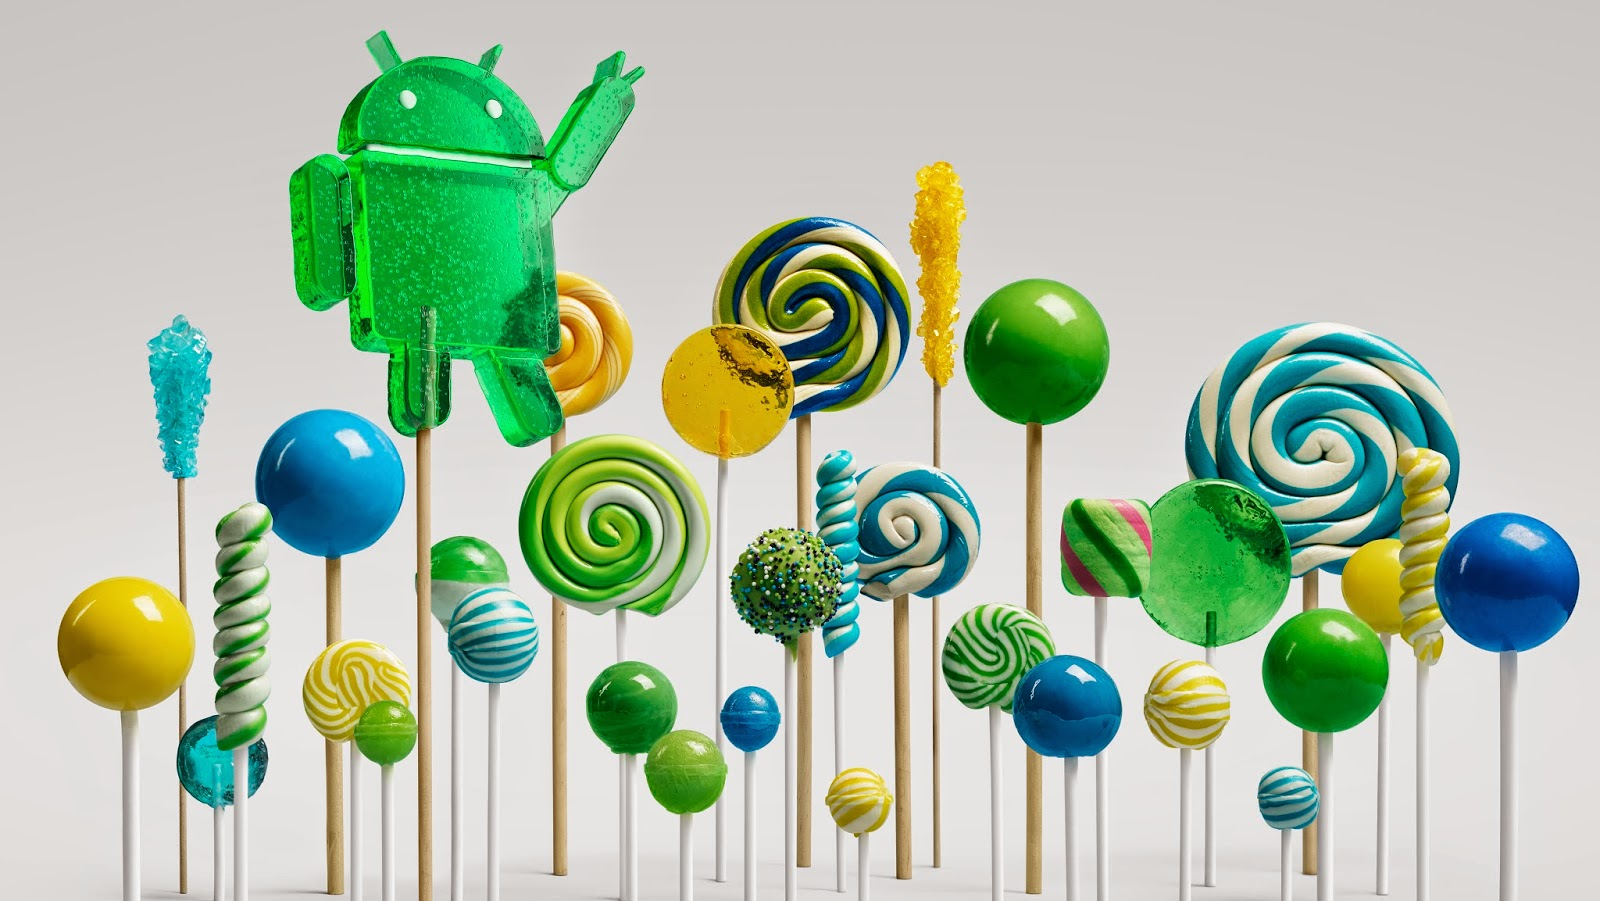 Android lollipop nexus 7